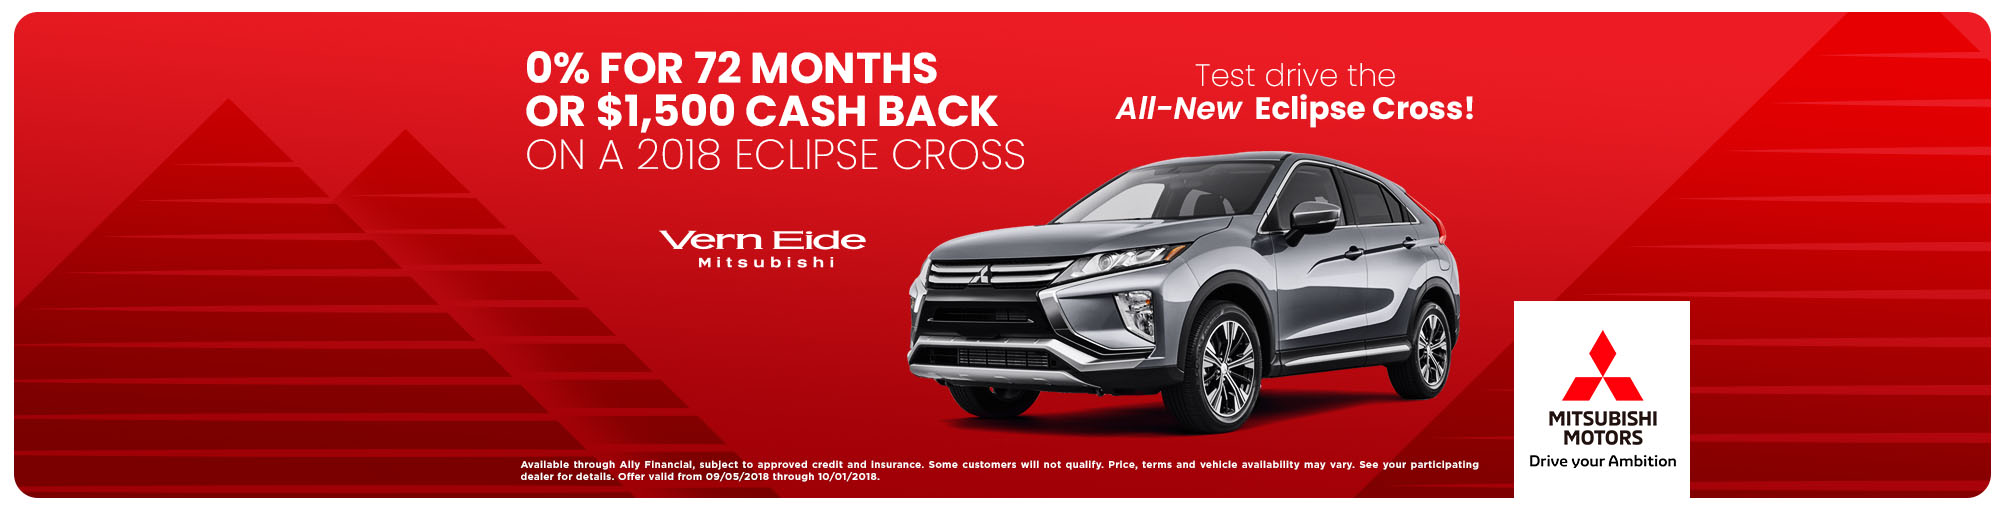 2018 Eclipse Cross - 0 for 72 - Sept 2018